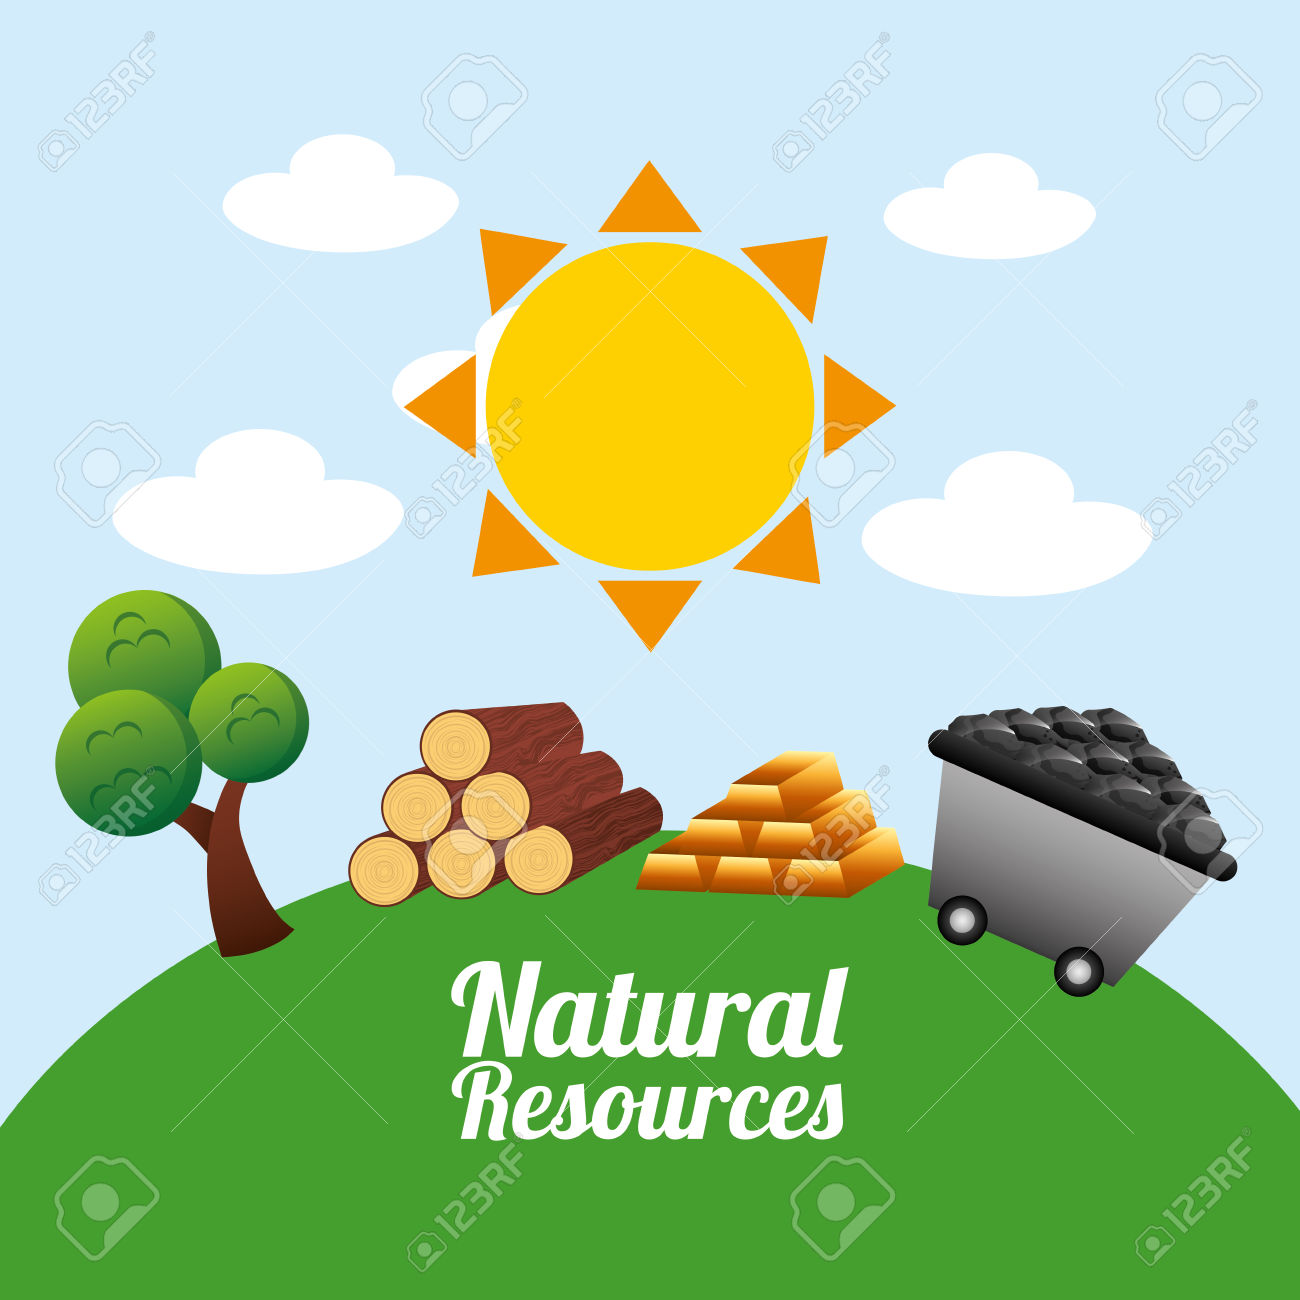 Natural Resources Clip Art : The natural resource clipart clipground